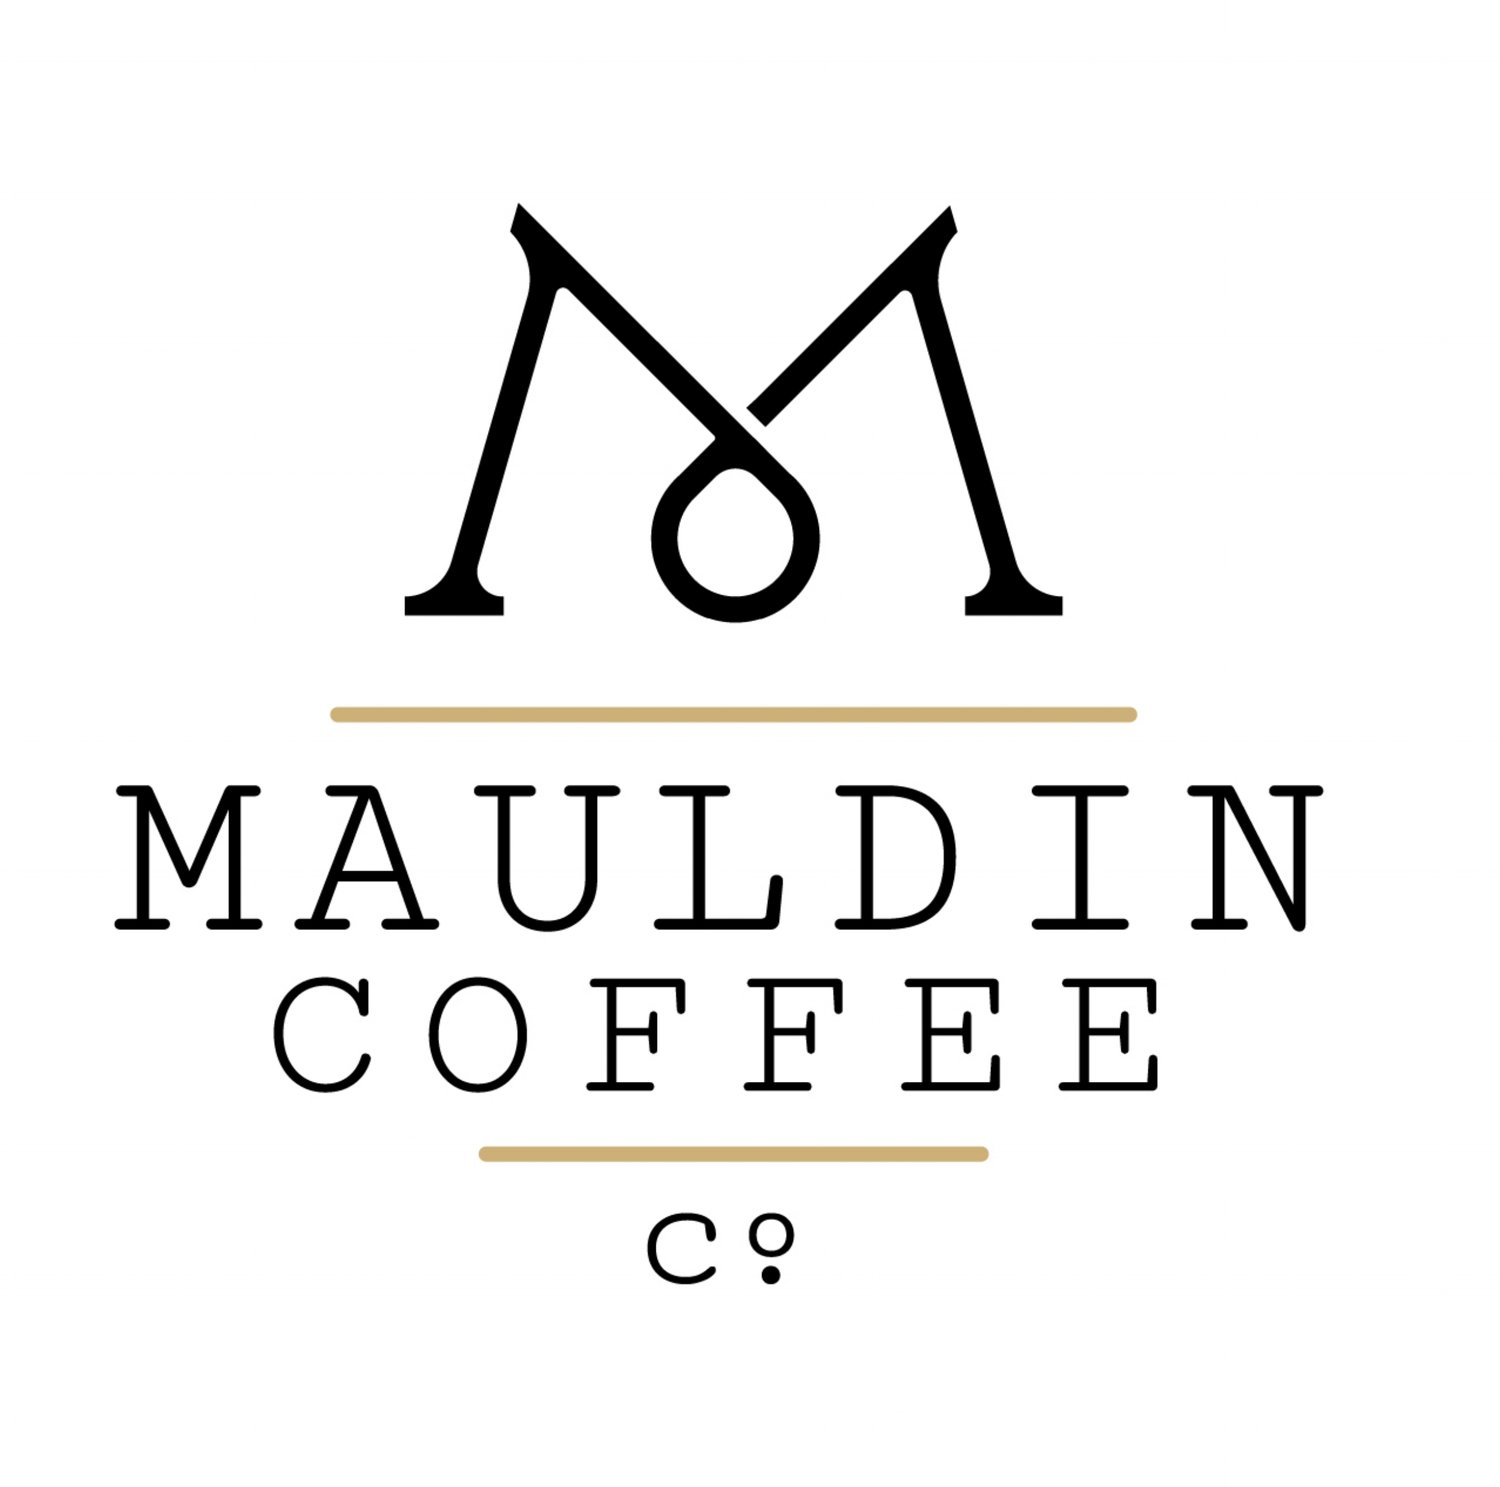 Mauldin Coffee Co.